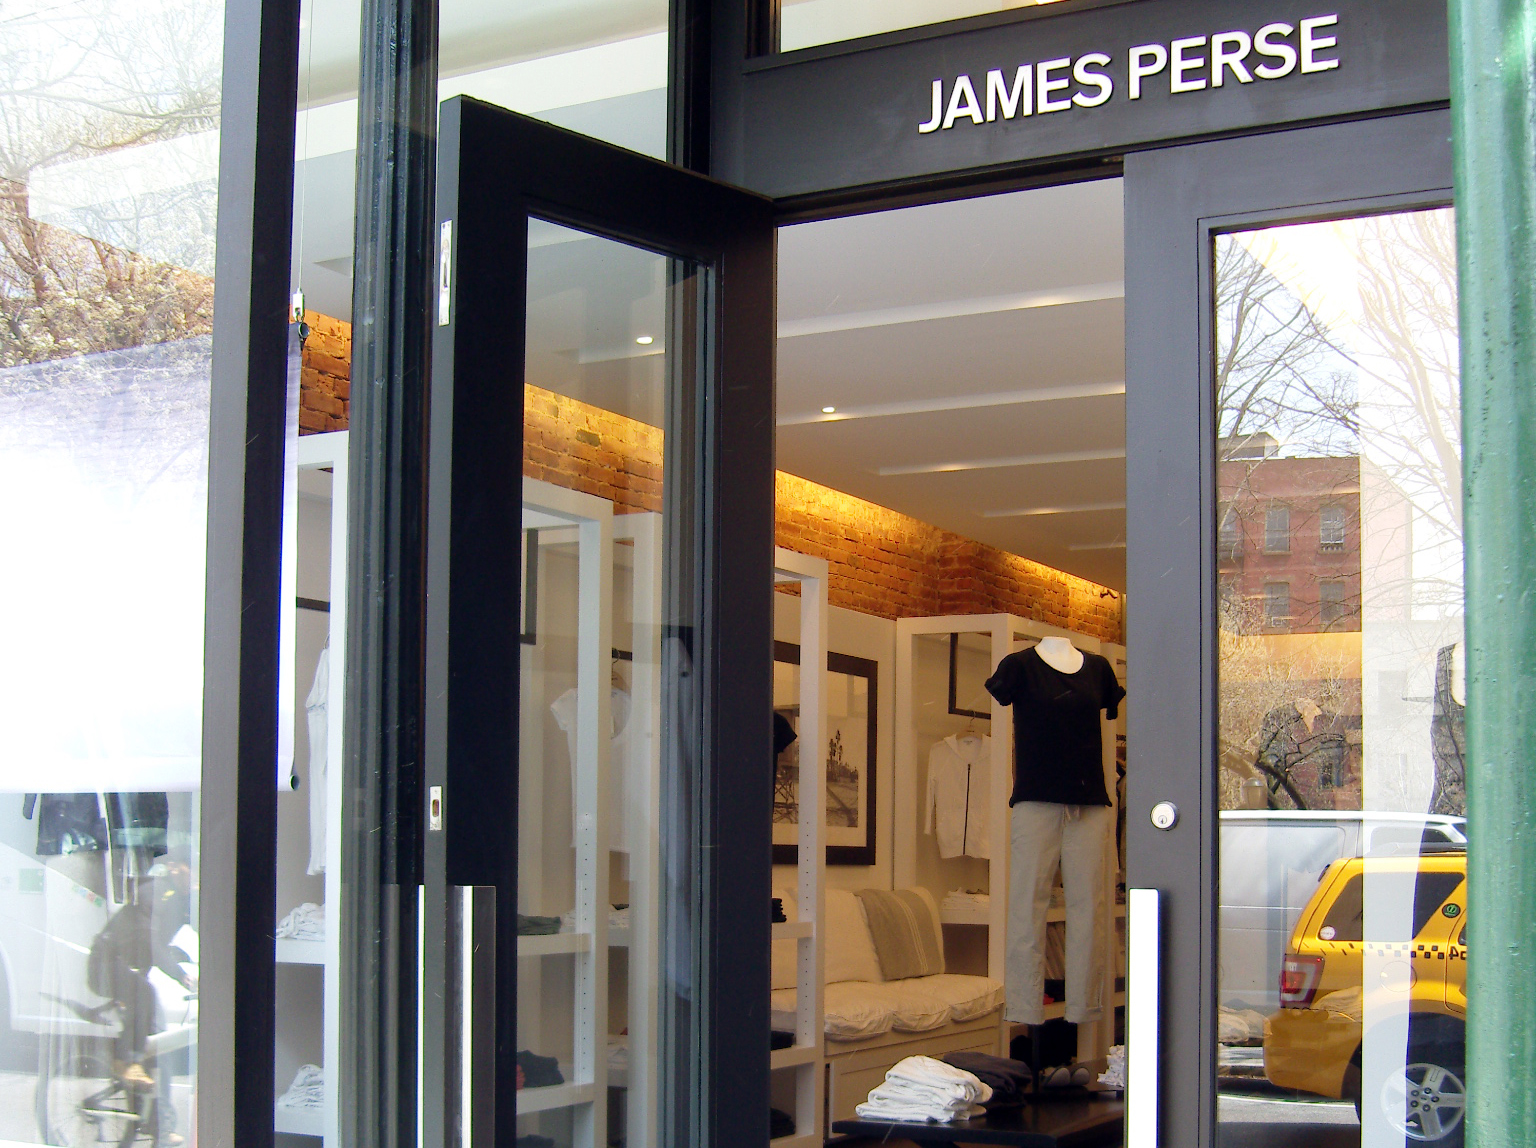 Store front at James Perse in New York. Photo by alphacityguides.